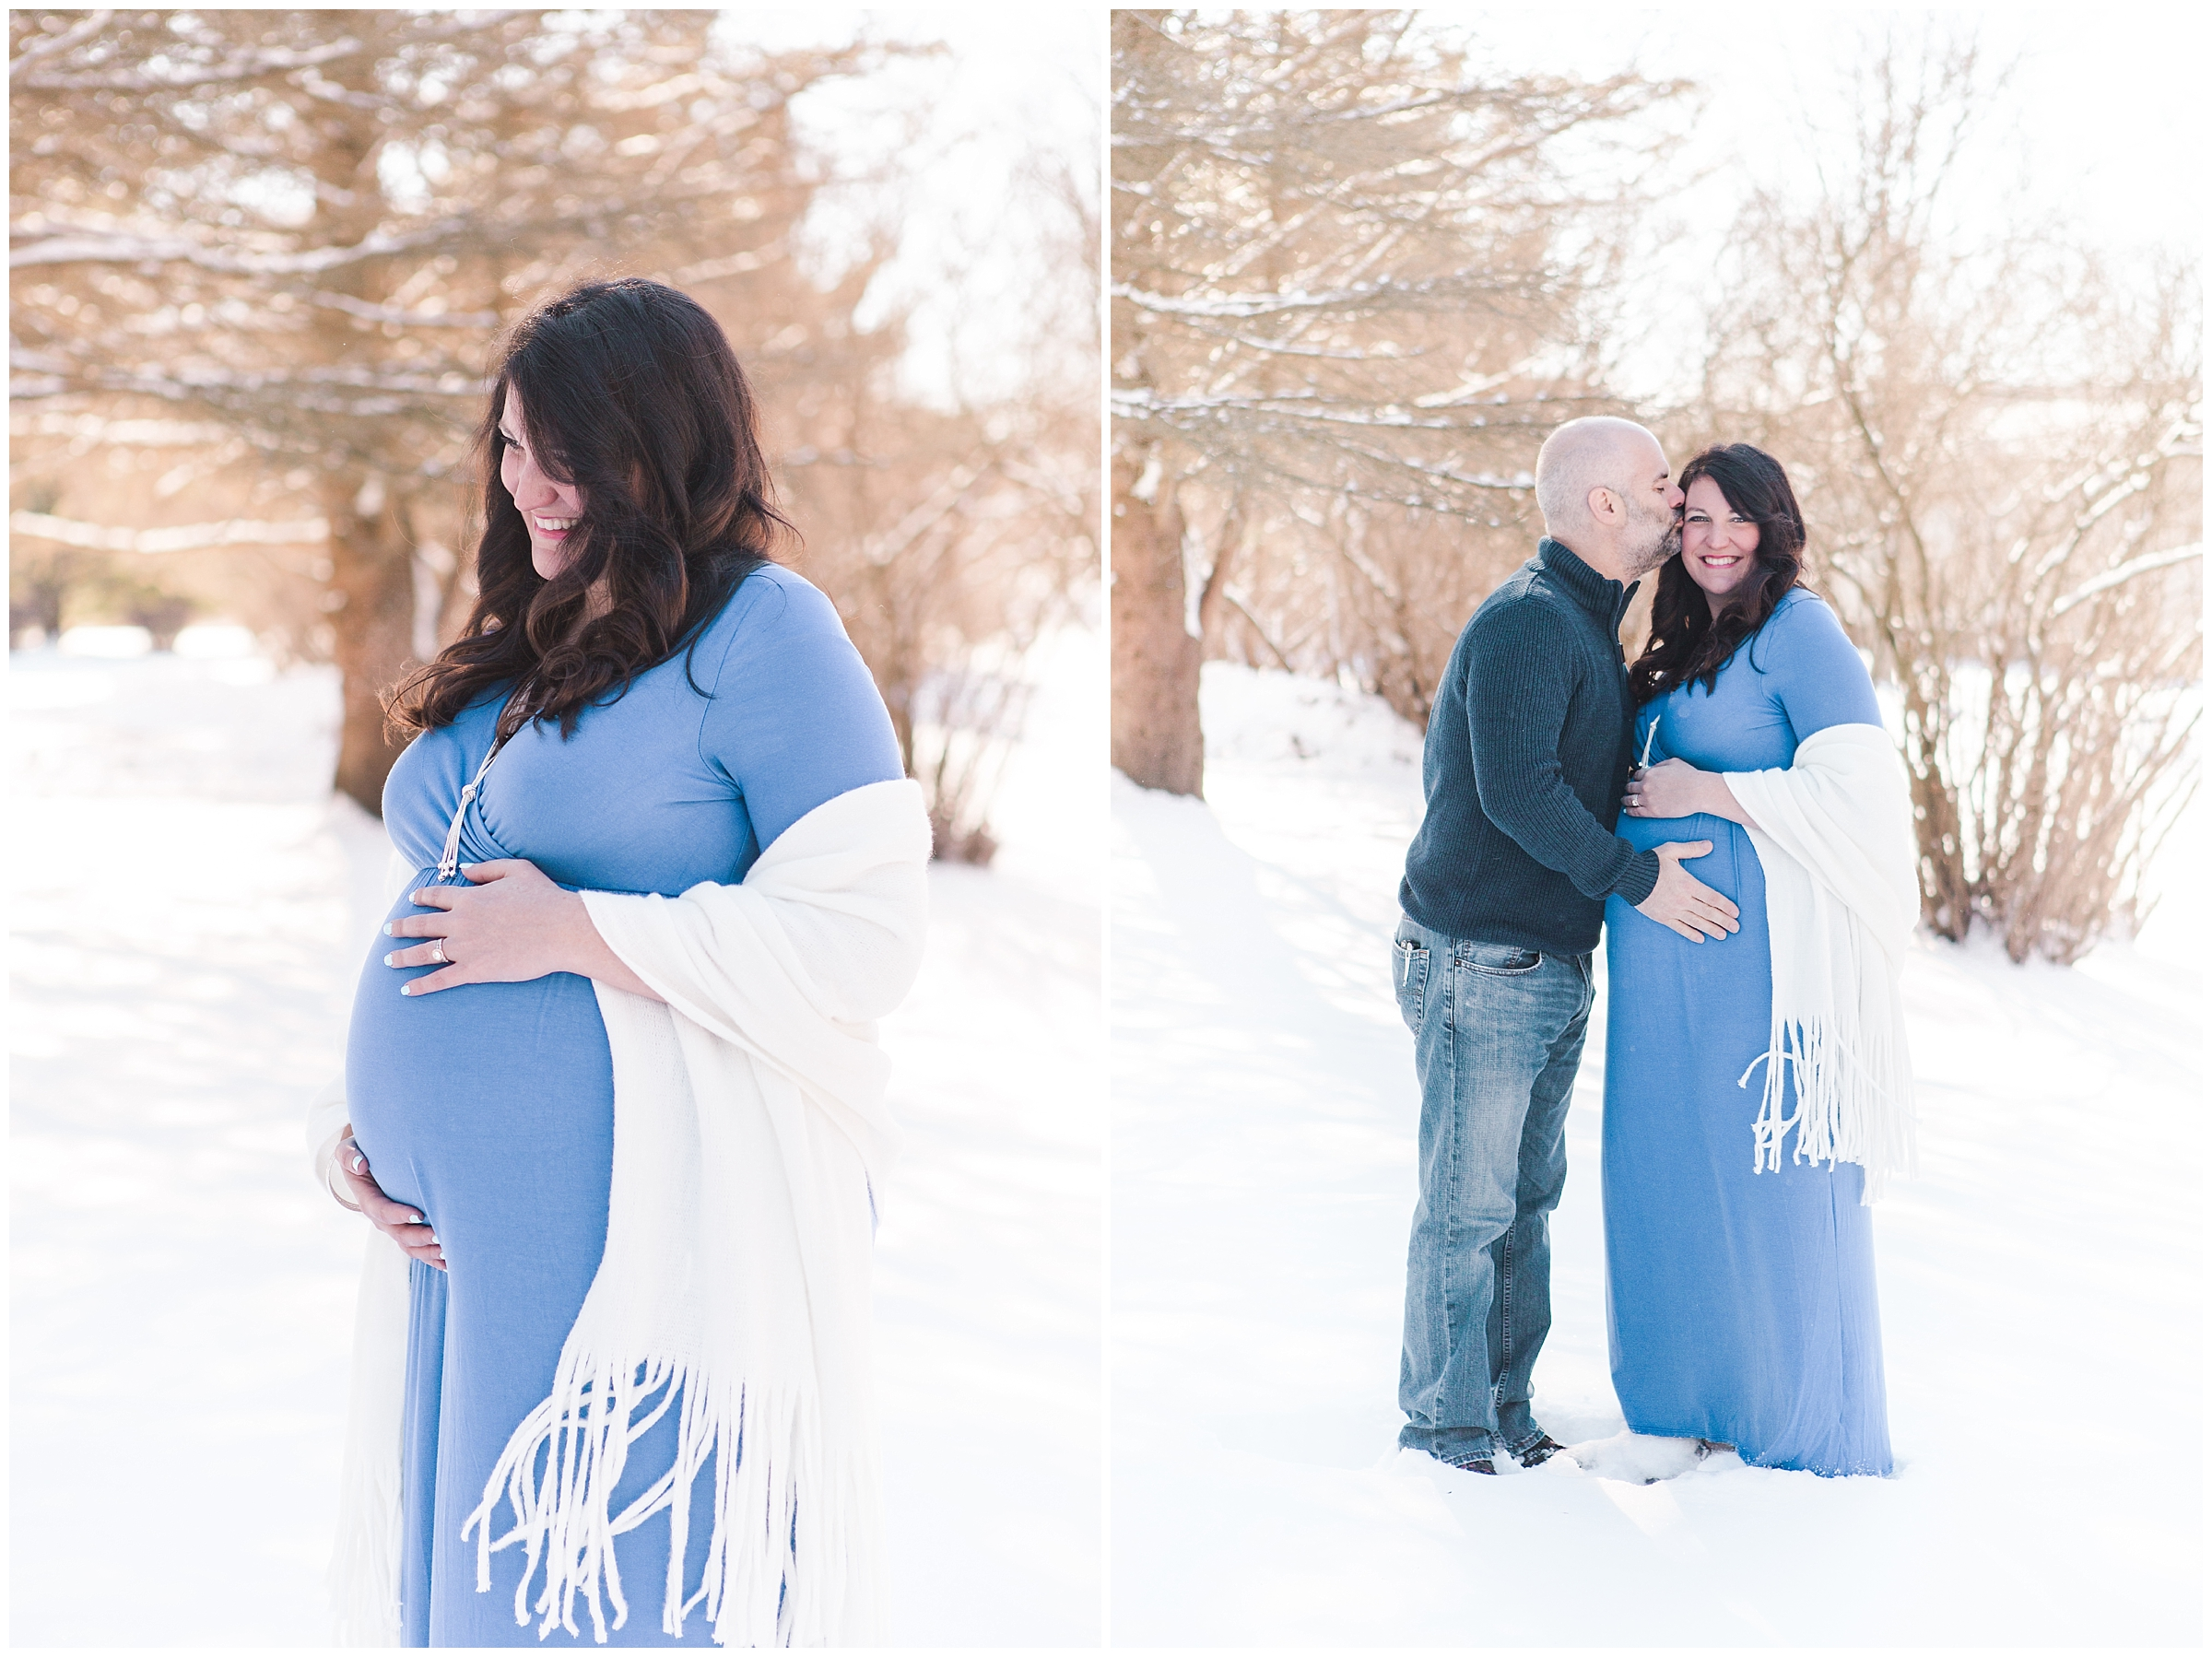 Winter Wonderland Maternity Session in Wisconsin